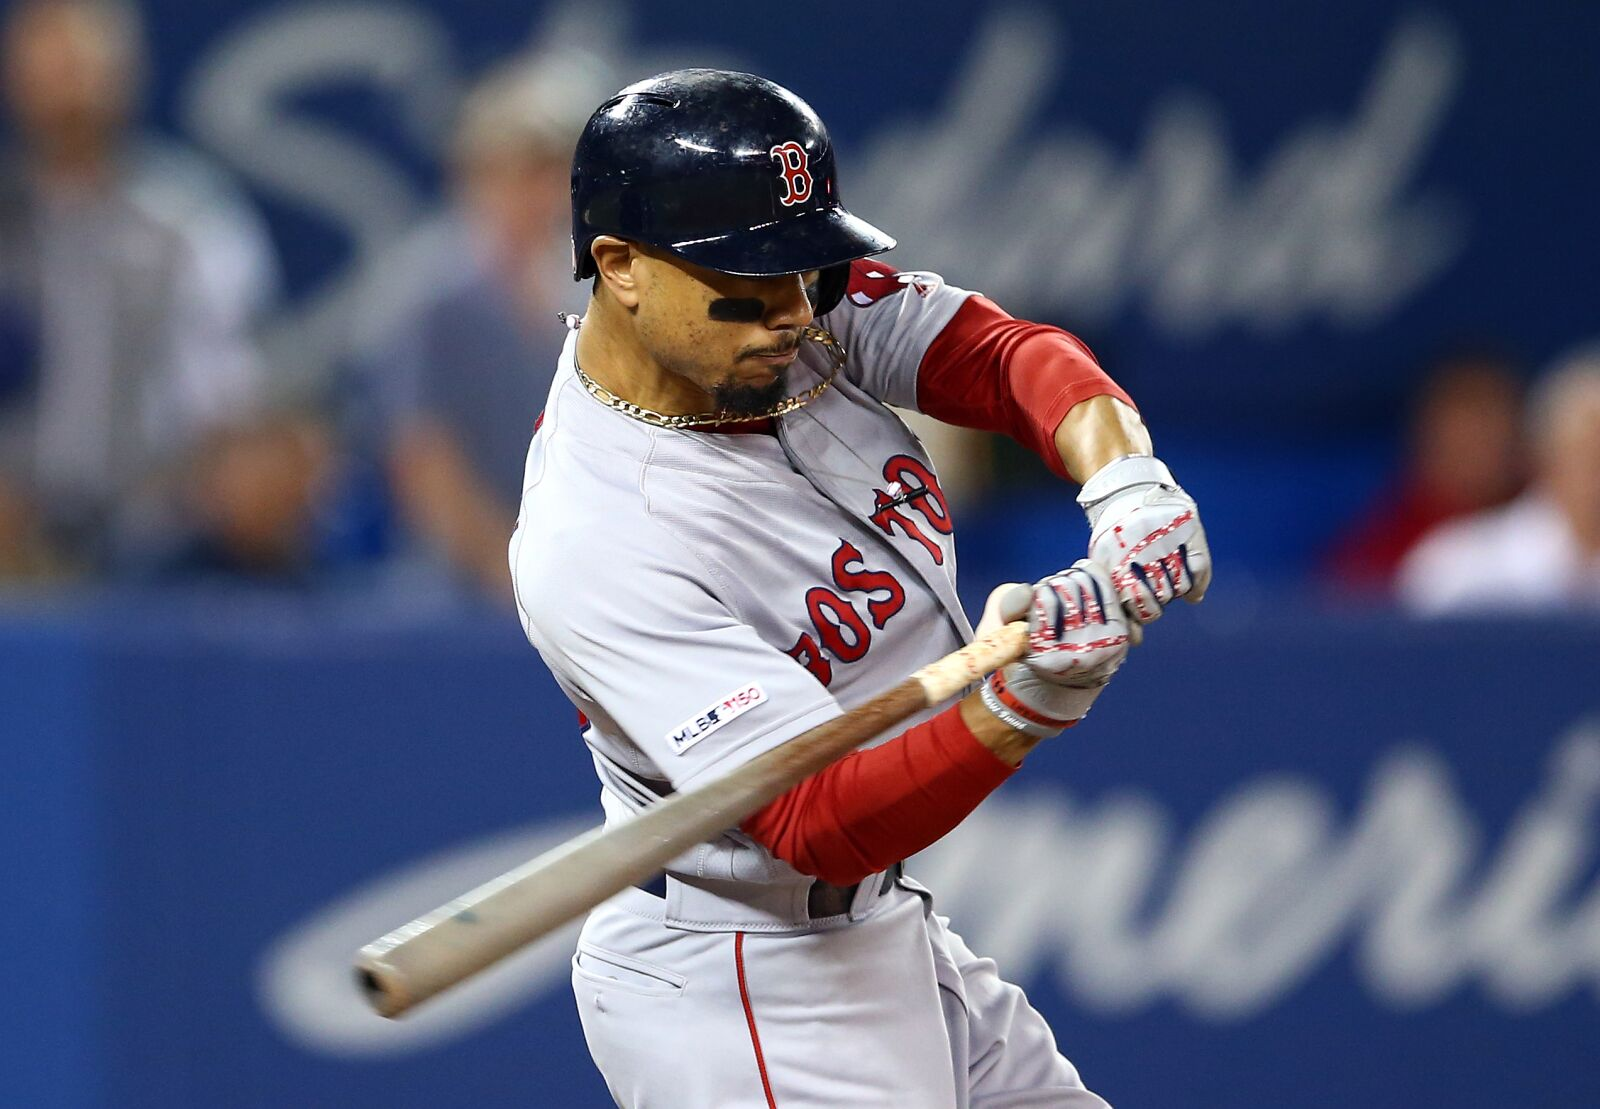 Padres need to up the ante if they want to land Mookie Betts